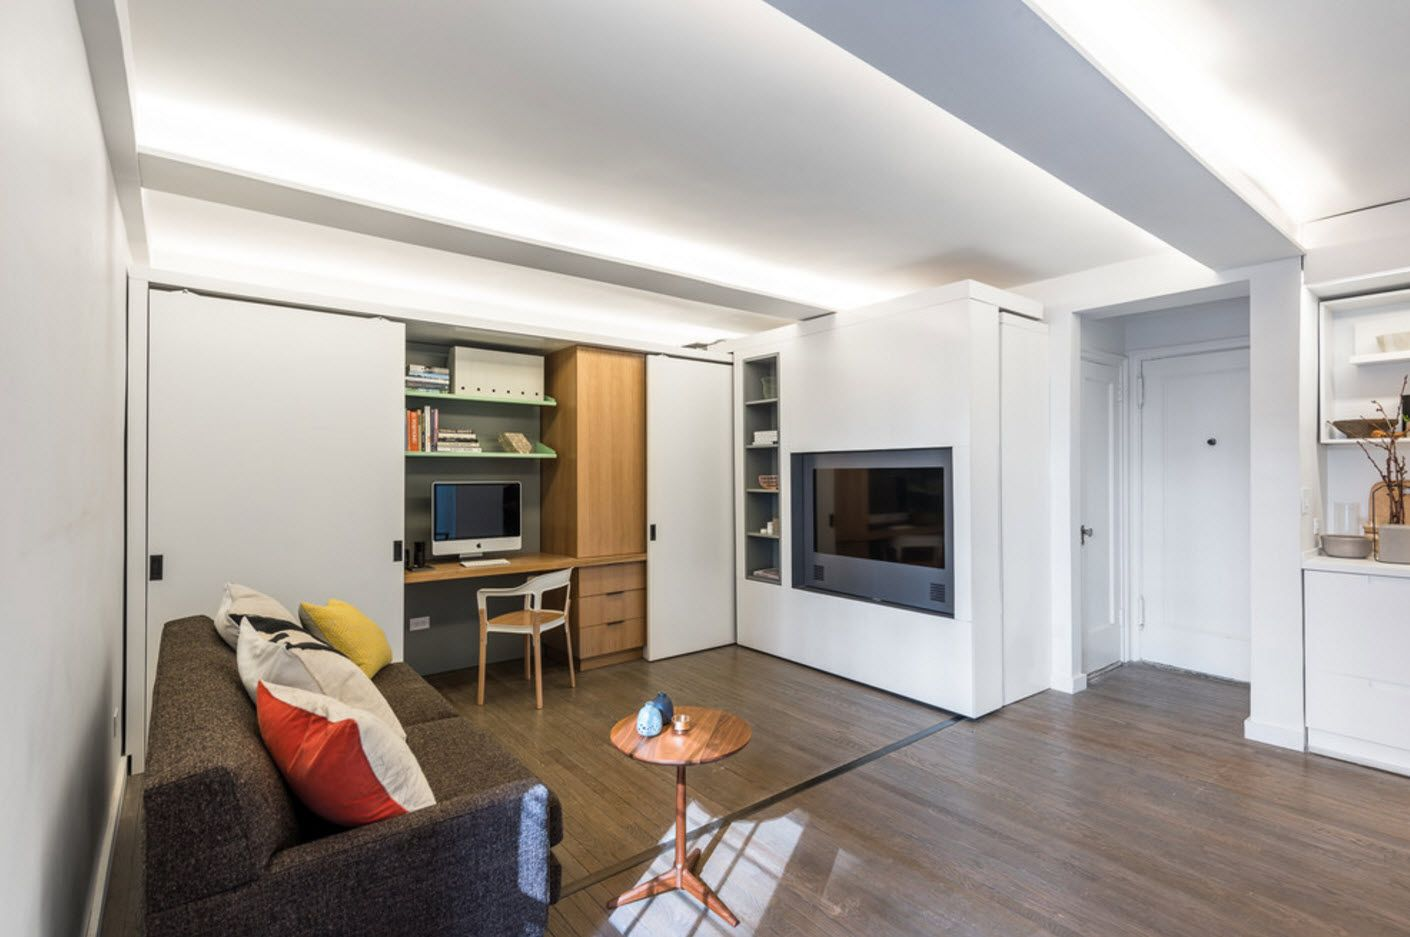 Apartment Interior Design Inspiration Ideas & Trends 2017. White space of the studio apartemtn with artificial hearth and wooden floor